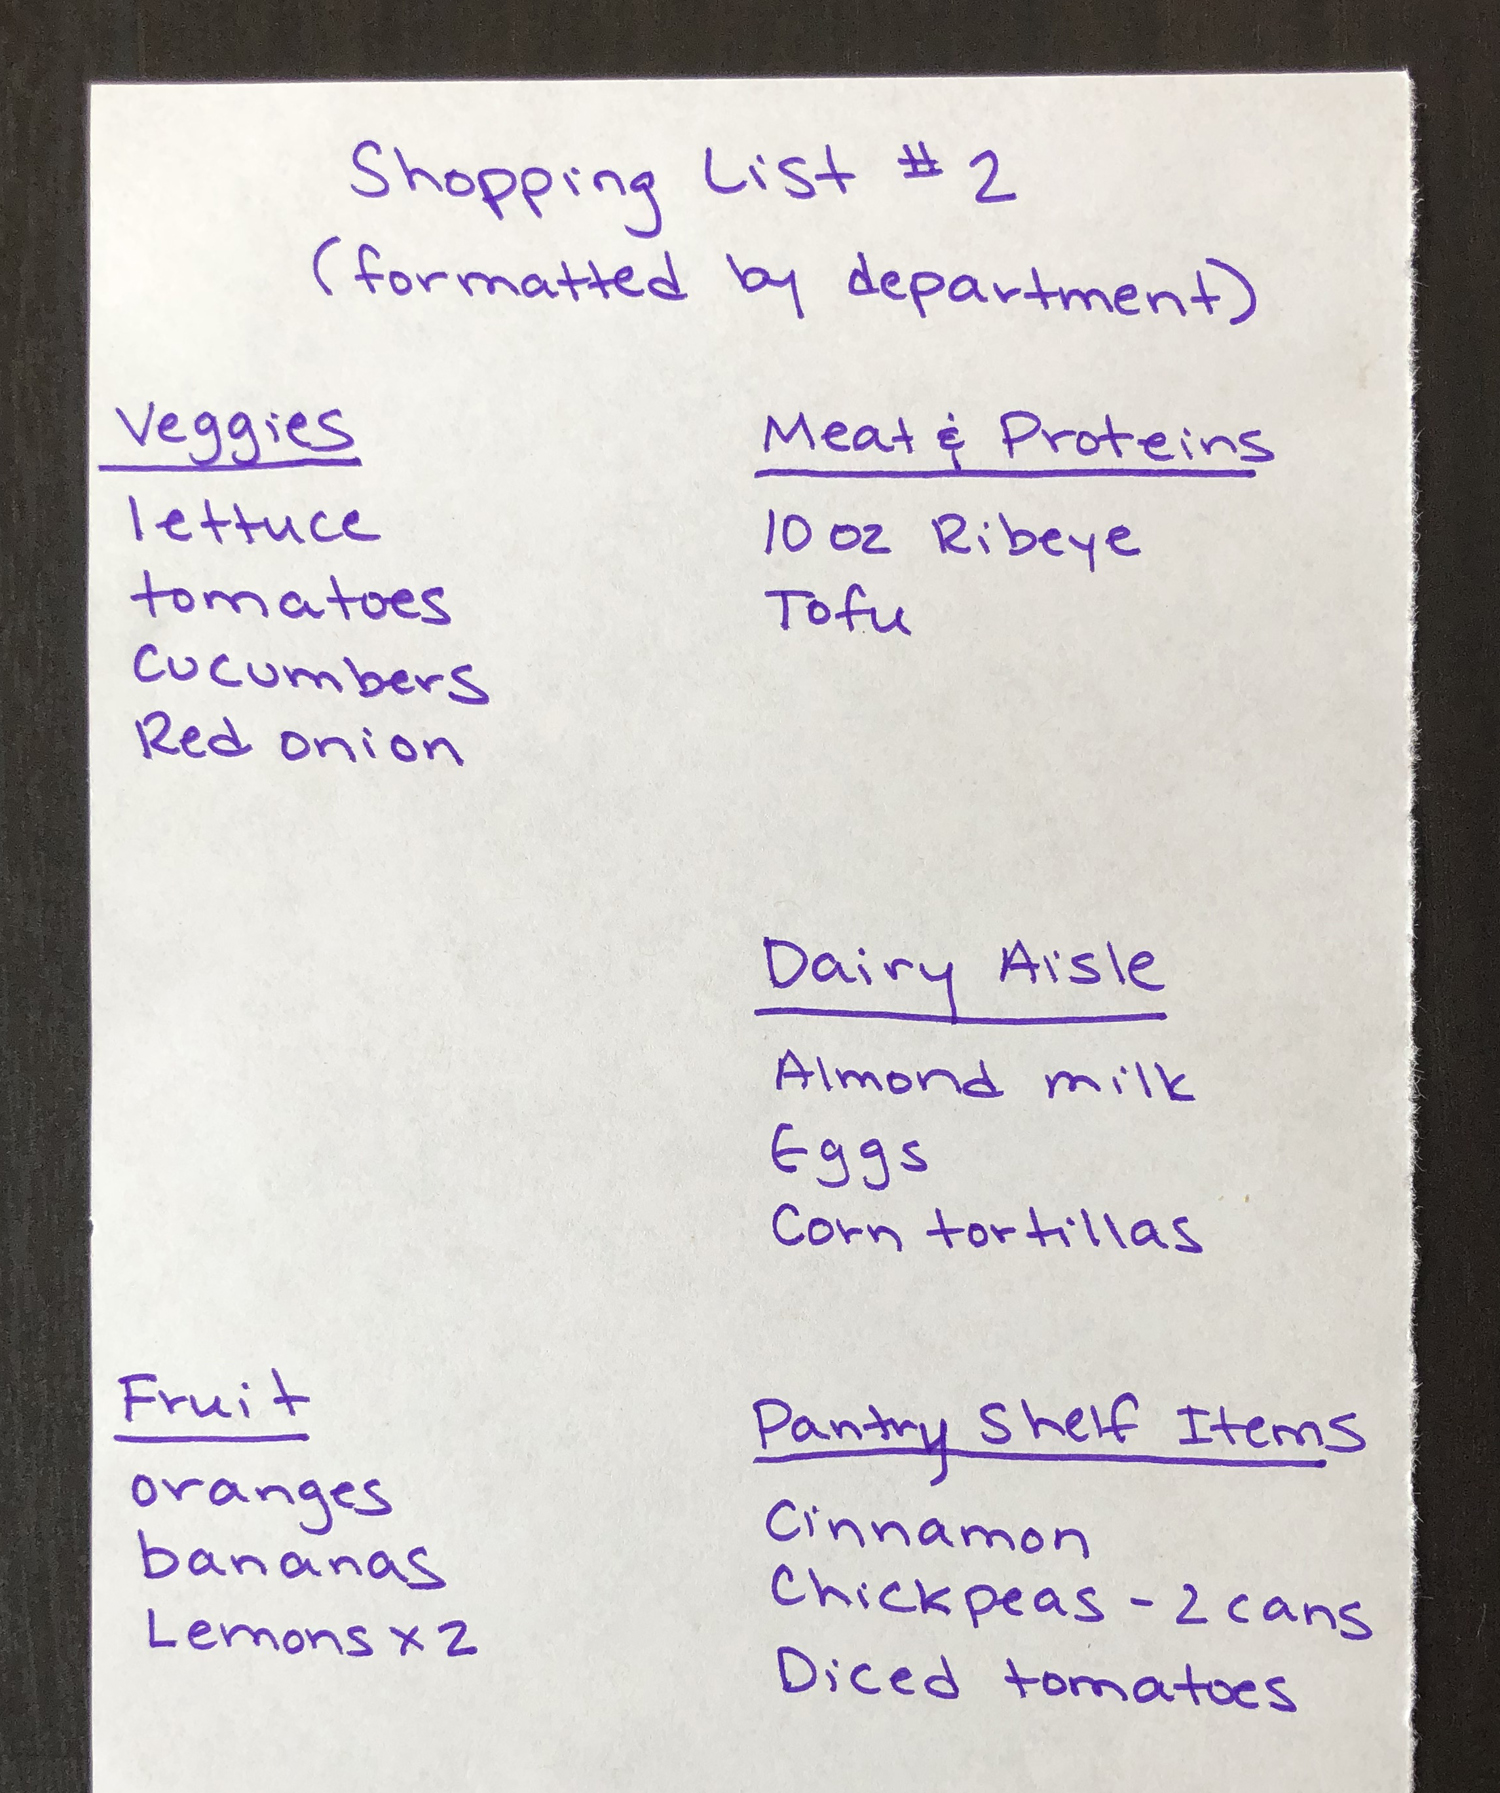 3-ways-to-spend-less-time-shopping-List2.jpg